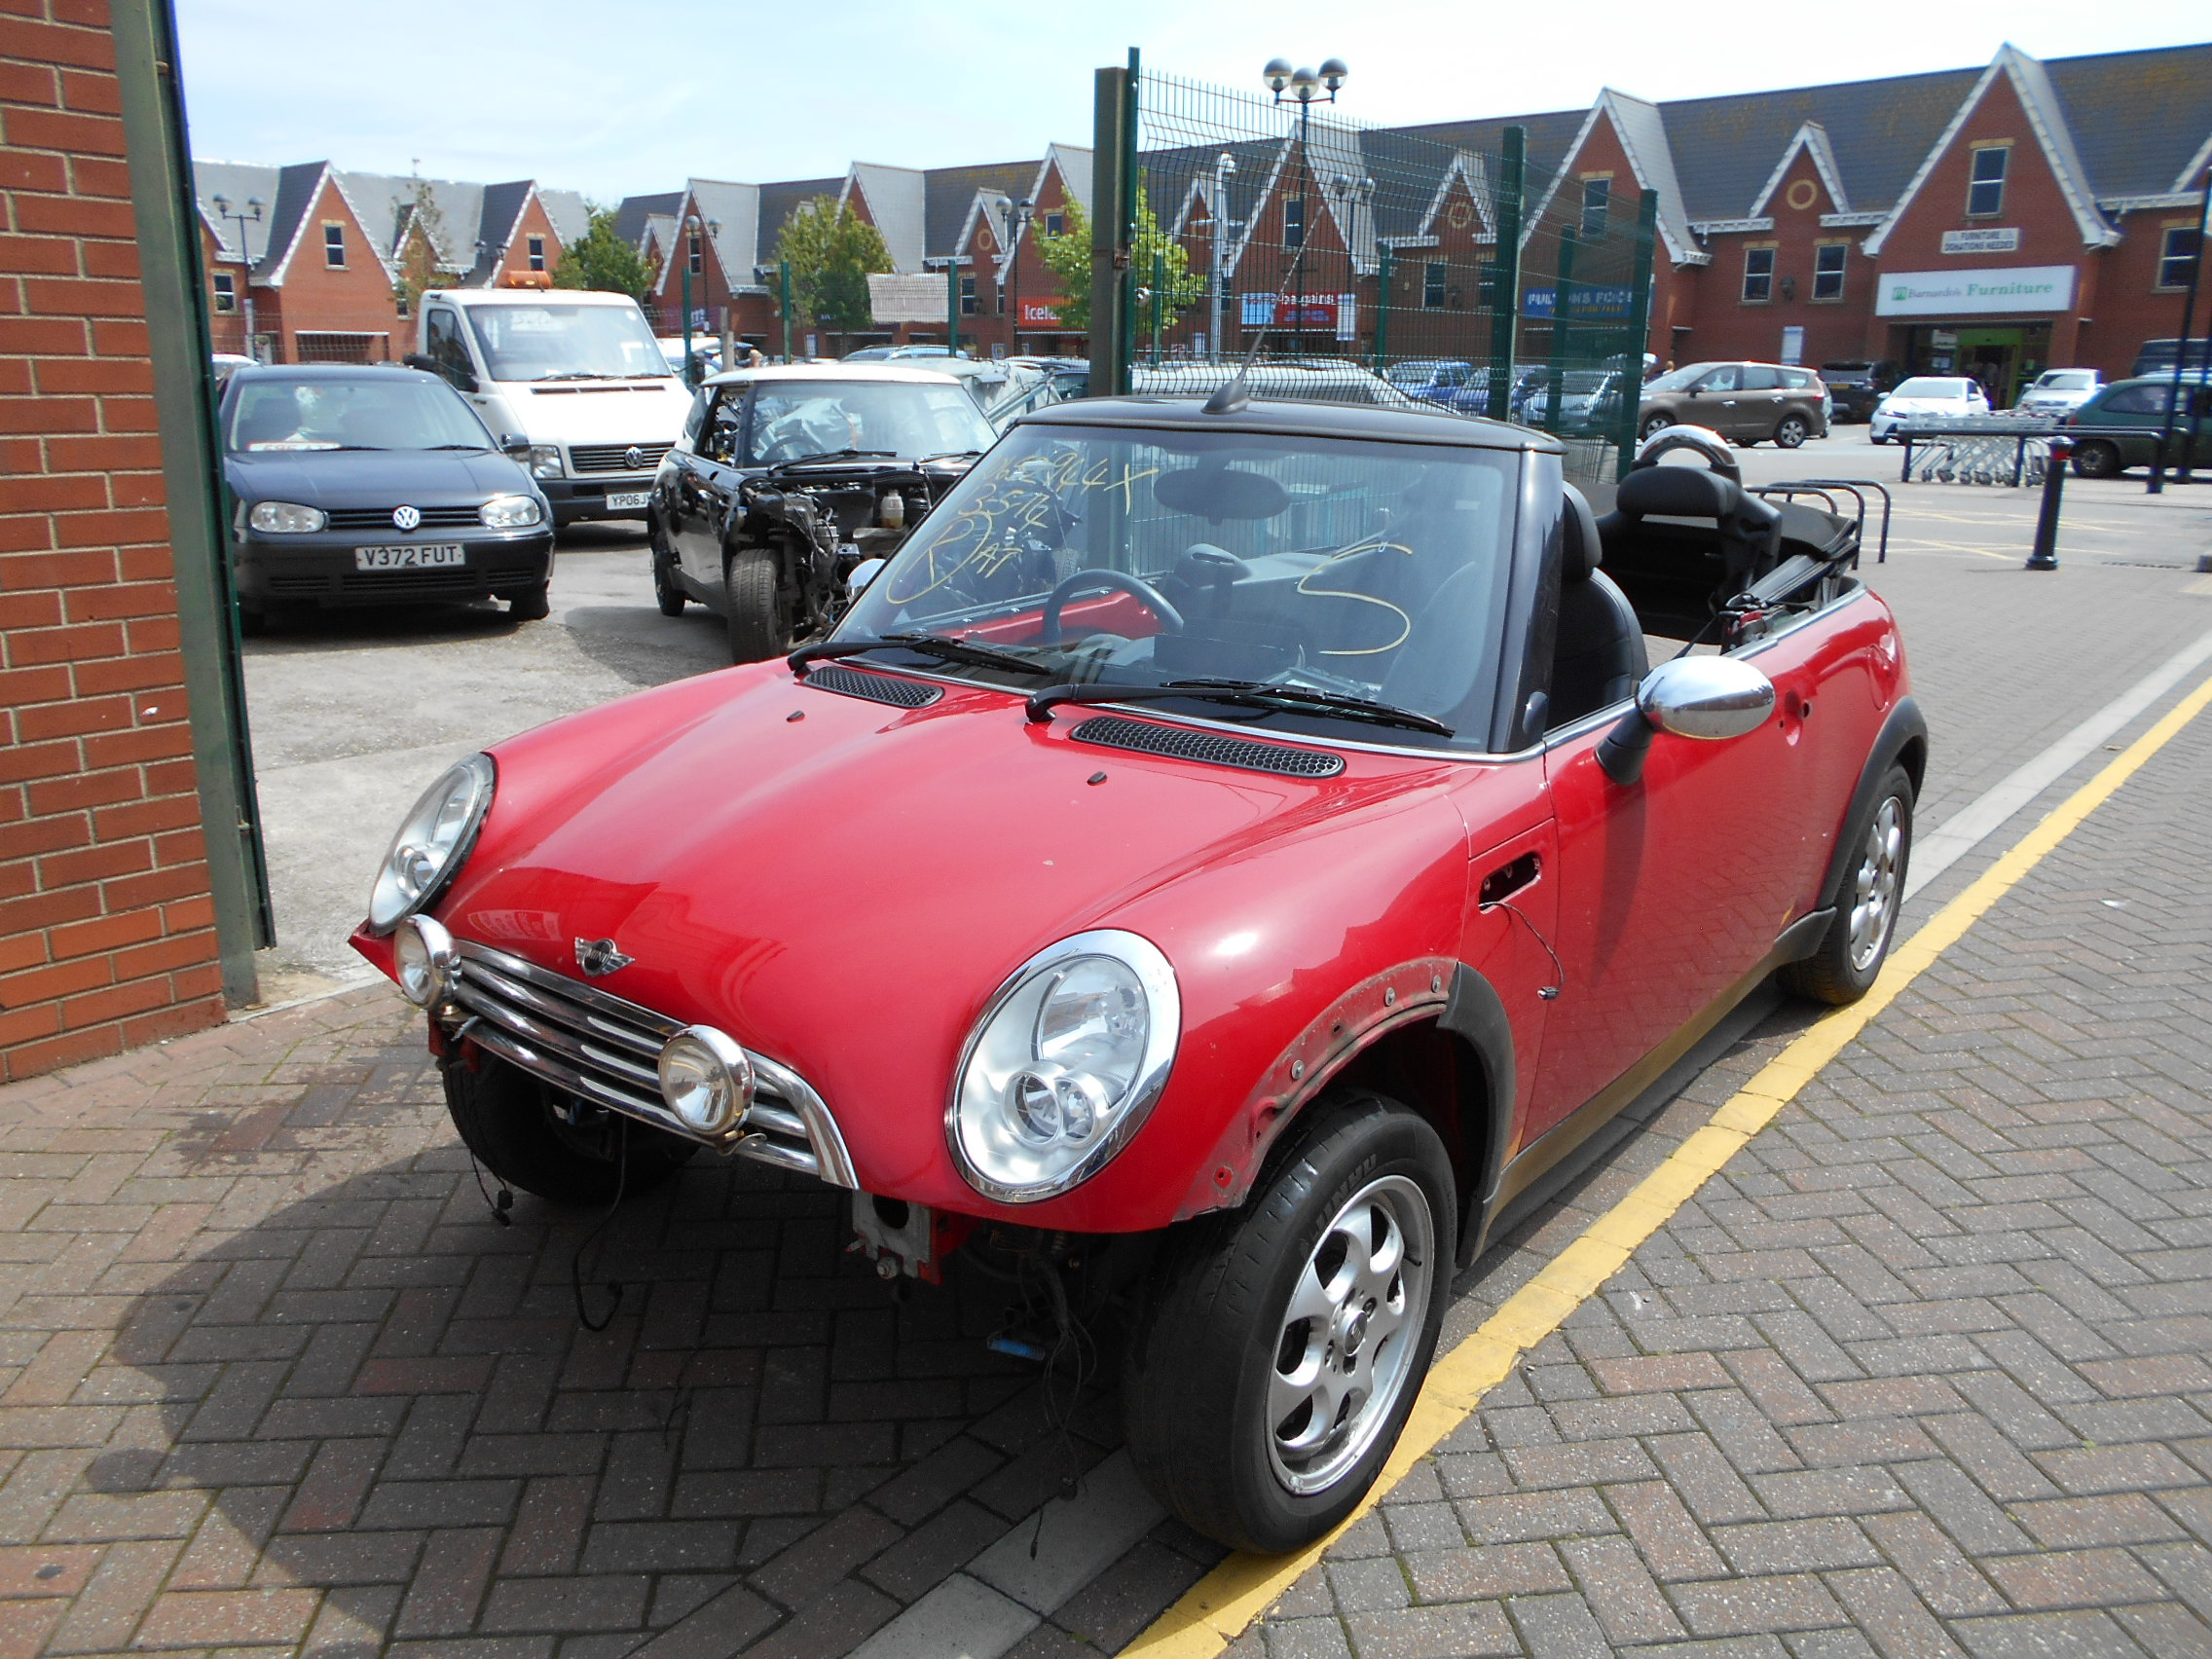 04 Chilli Red 1.6 BMW Mini Convertible - 5